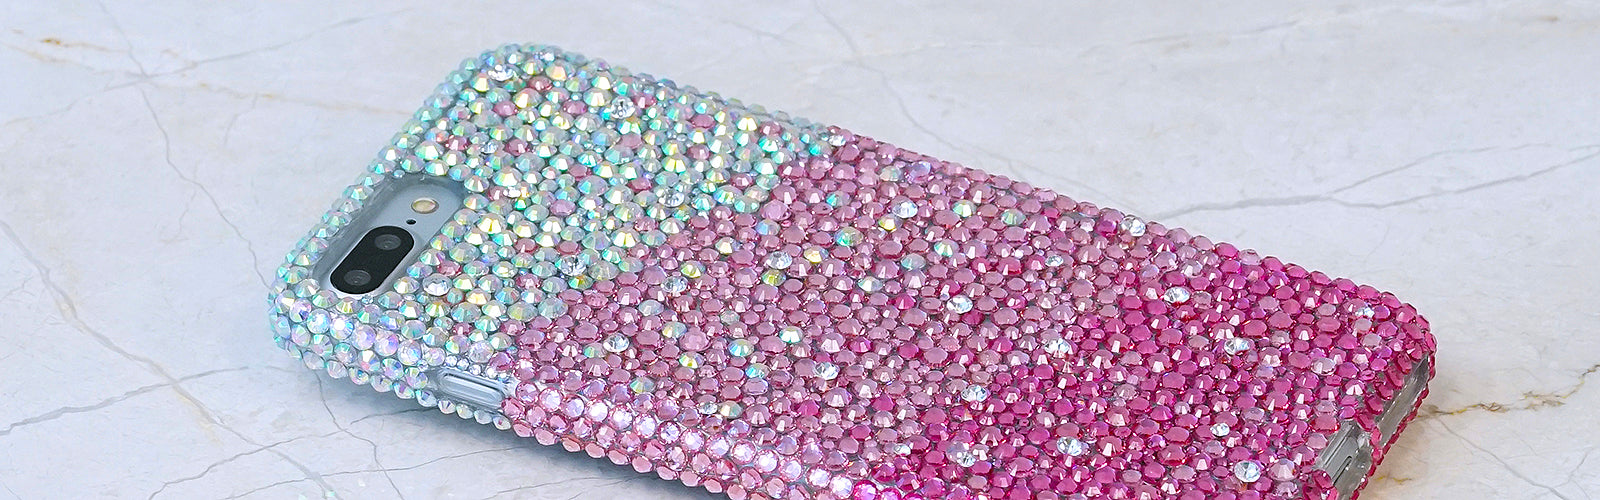 Bling iphone 7 / 8 Plus case